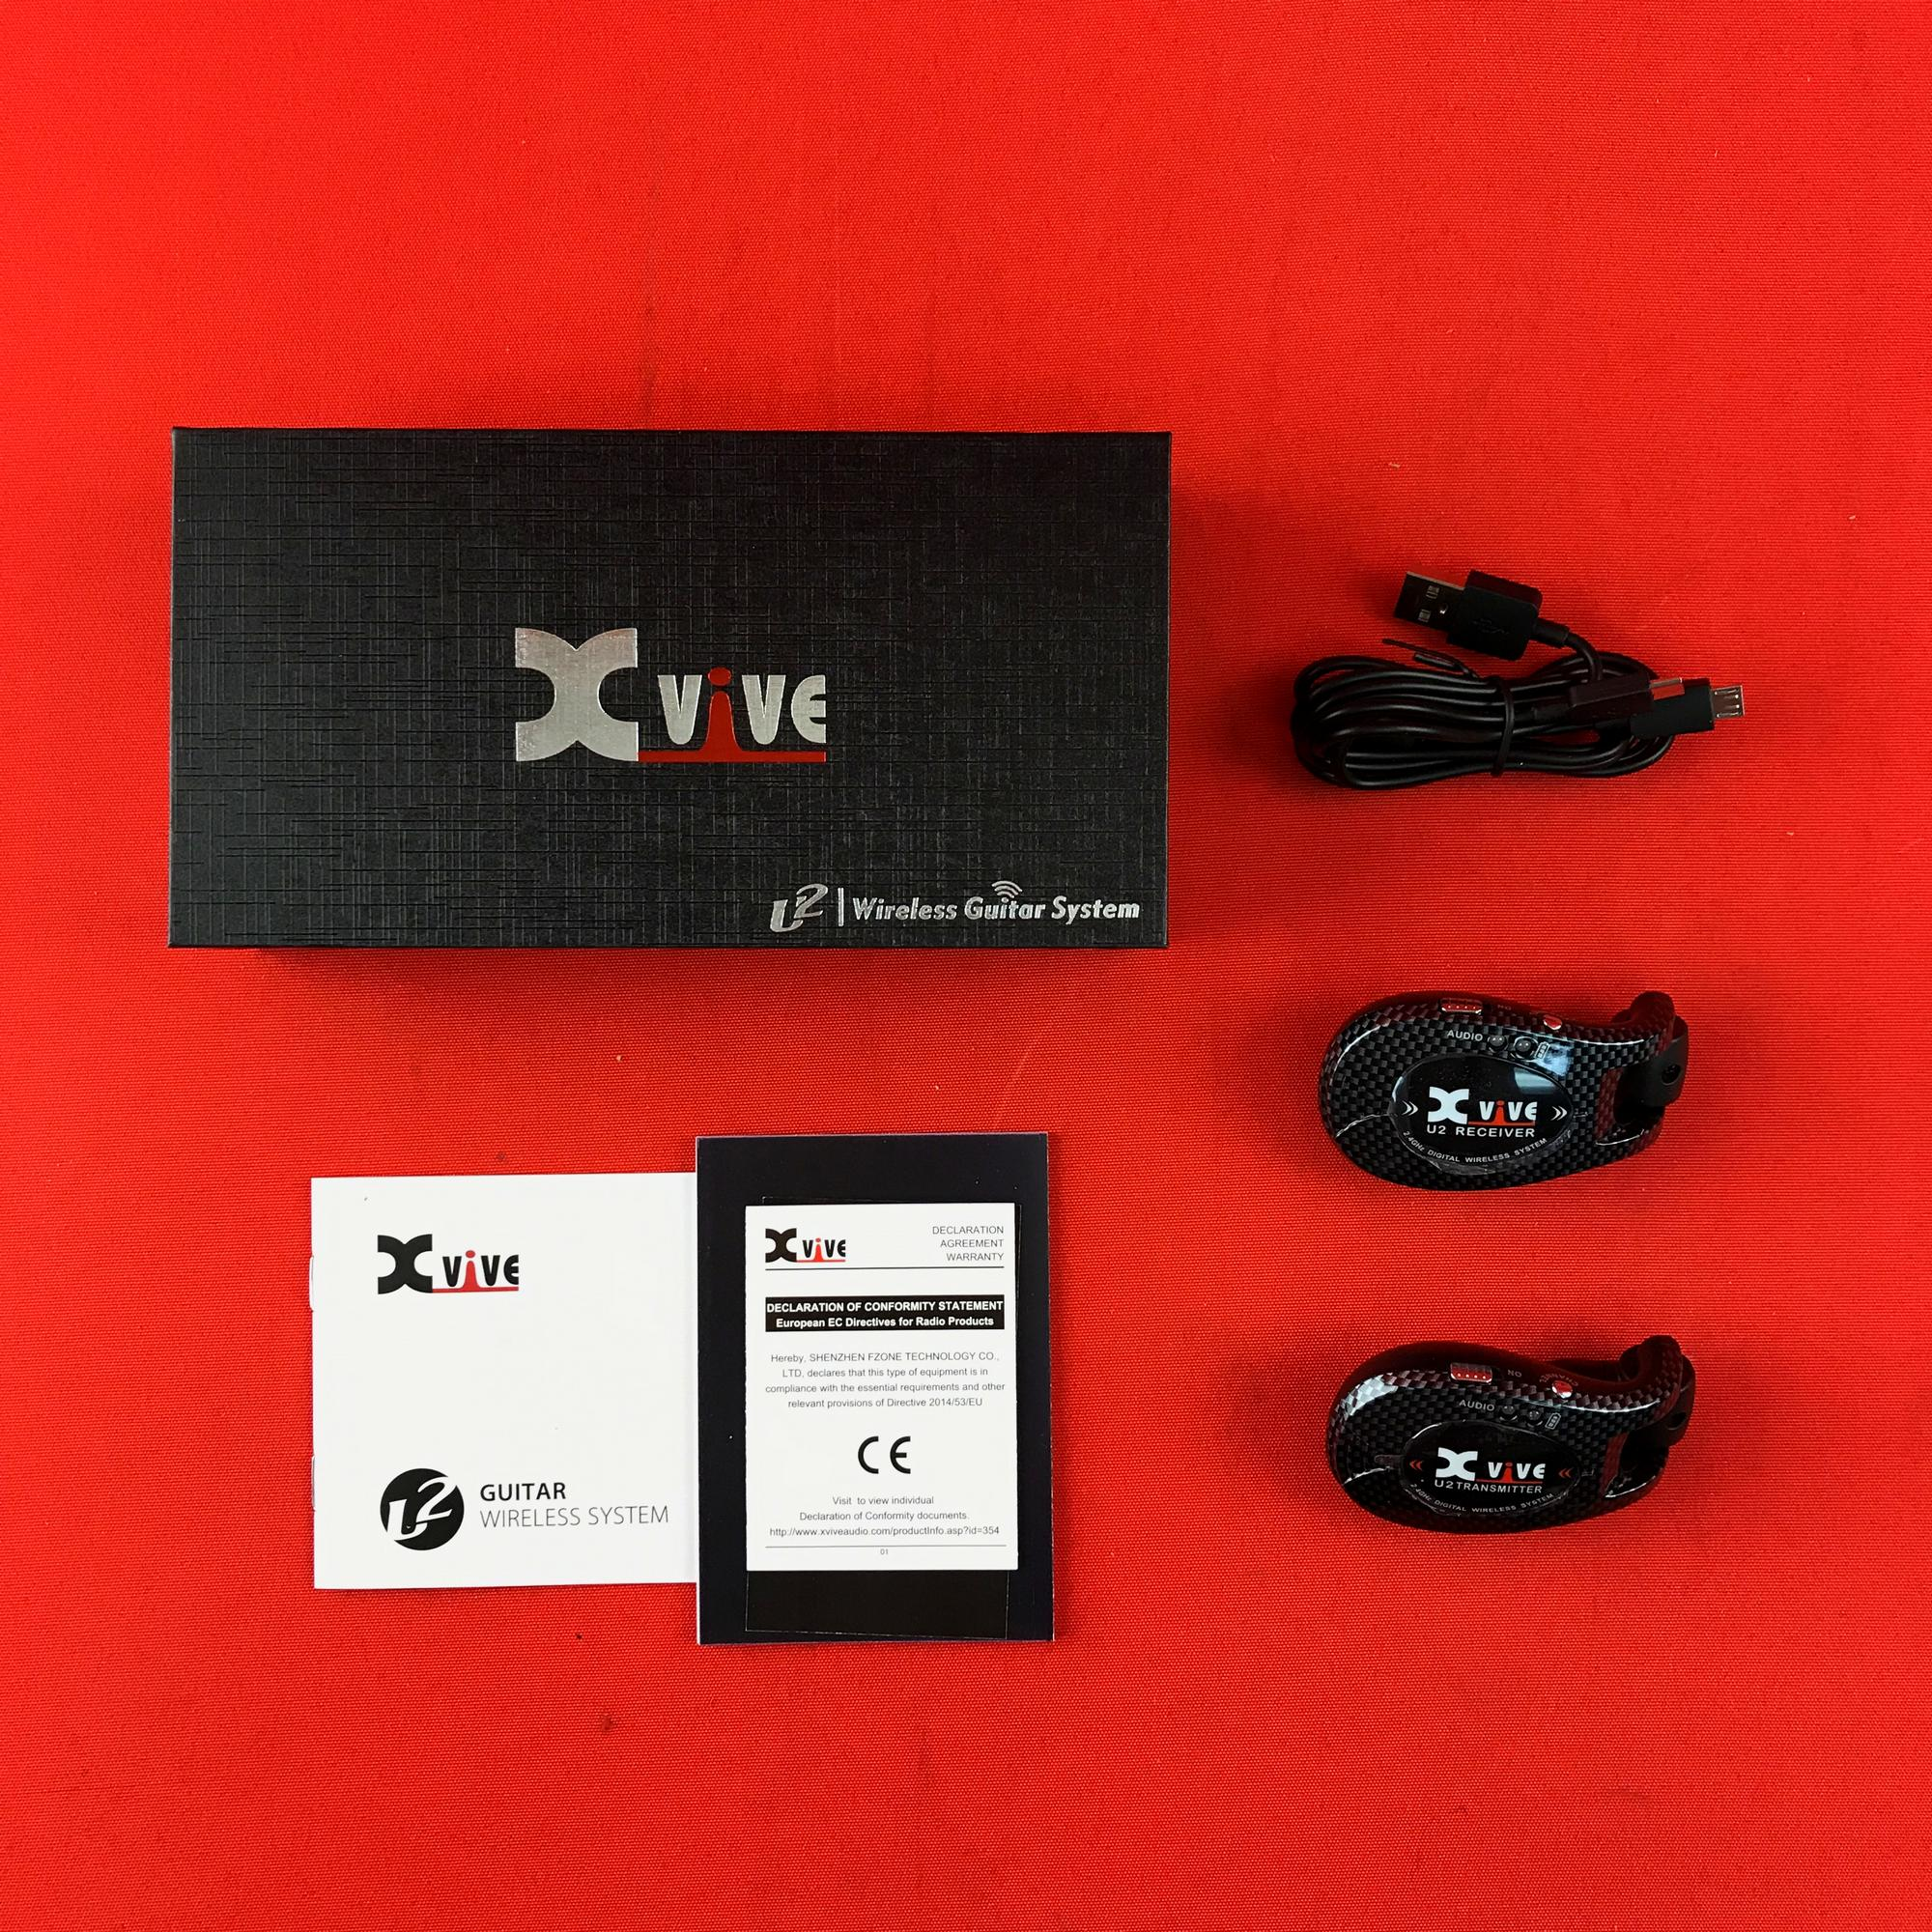 [USED] Xvive U2 2.4GHZ Wireless Guitar System, Carbon